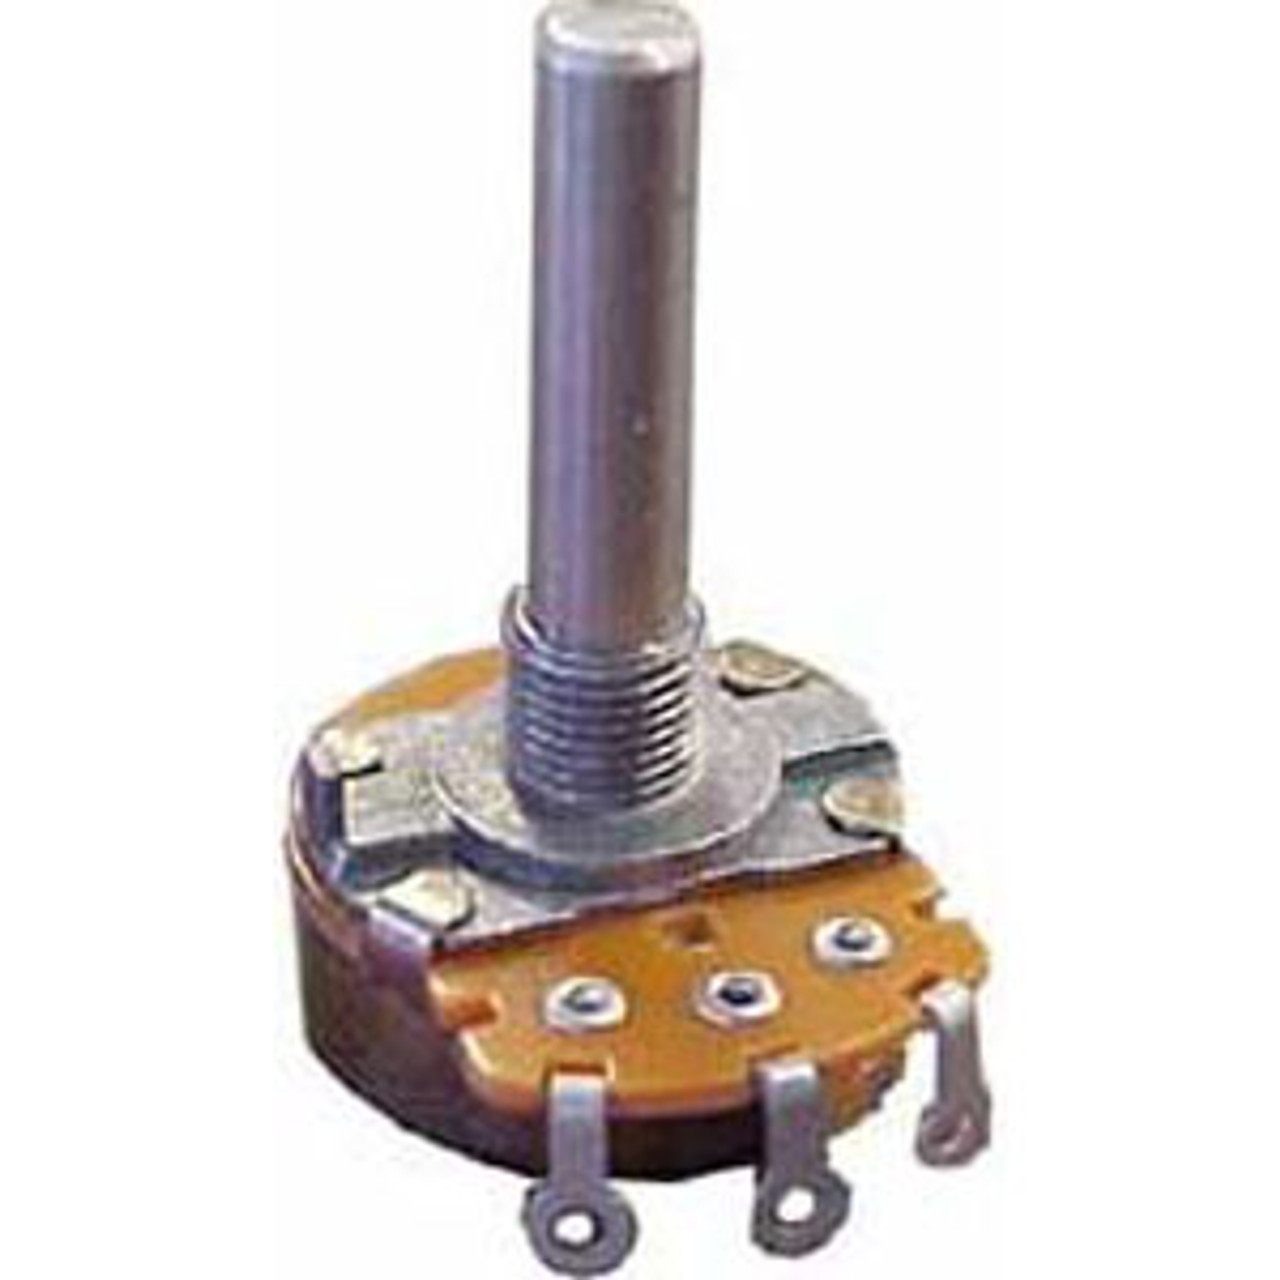 5K Potentiometer (16 mm) Linear taper without switch Solder lug terminals Max voltage: 150 VAC Audio 200 VAC Power rating: Linear 200mA, .2W Audio 100 mA, .1W Bushing diameter 7 mm Shaft 30mm w/flat 12mm, 6mm OD